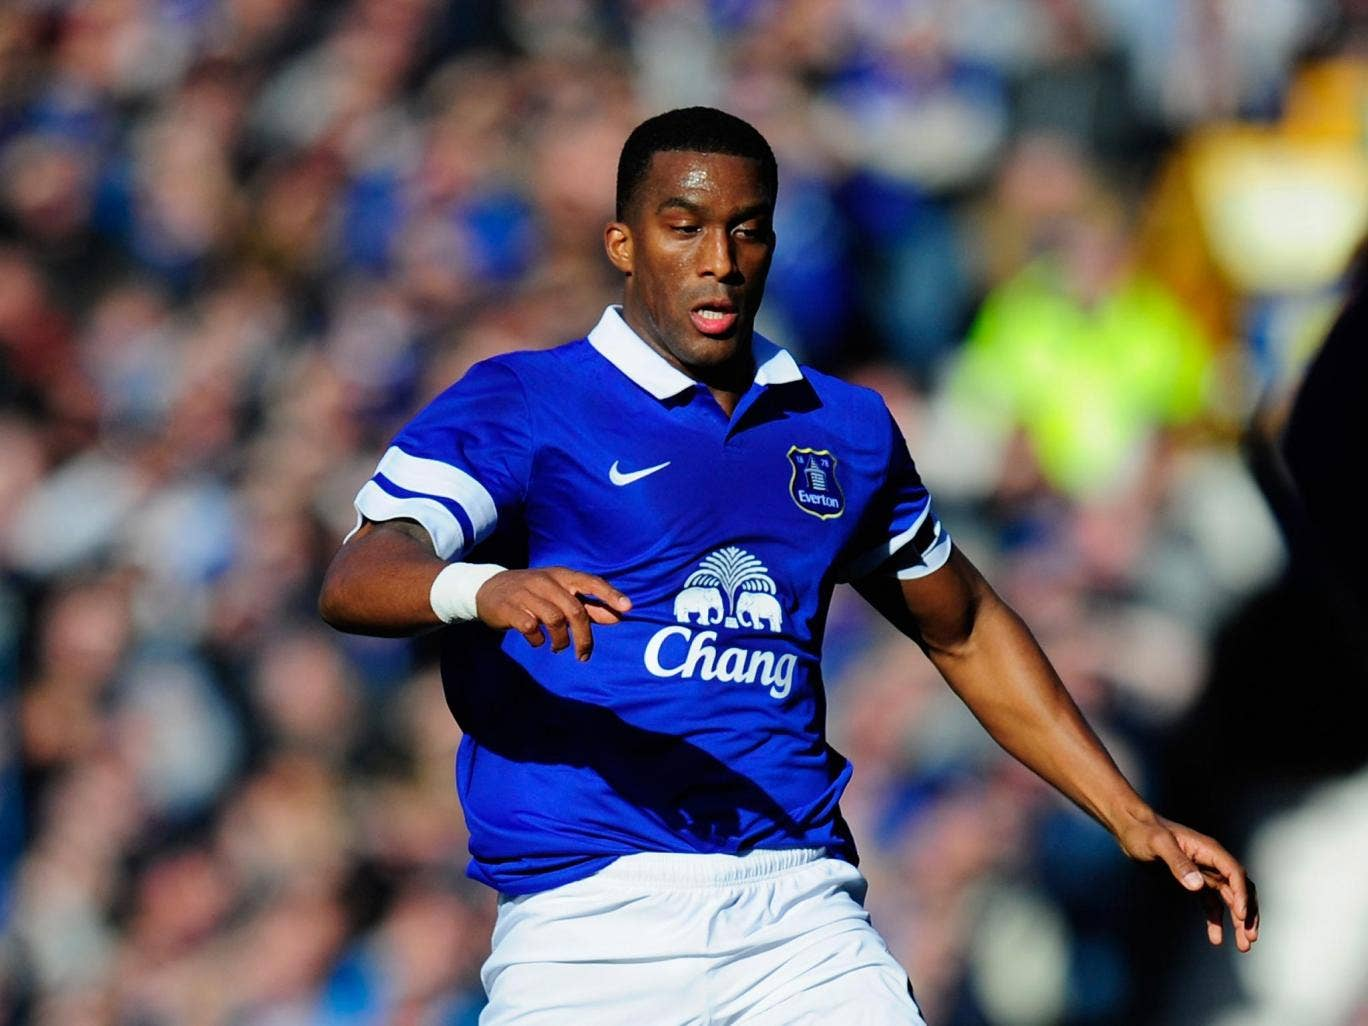 Everton defender Syvain Distin suffered a hamstring injury in the 2-0 victory over Manchester United